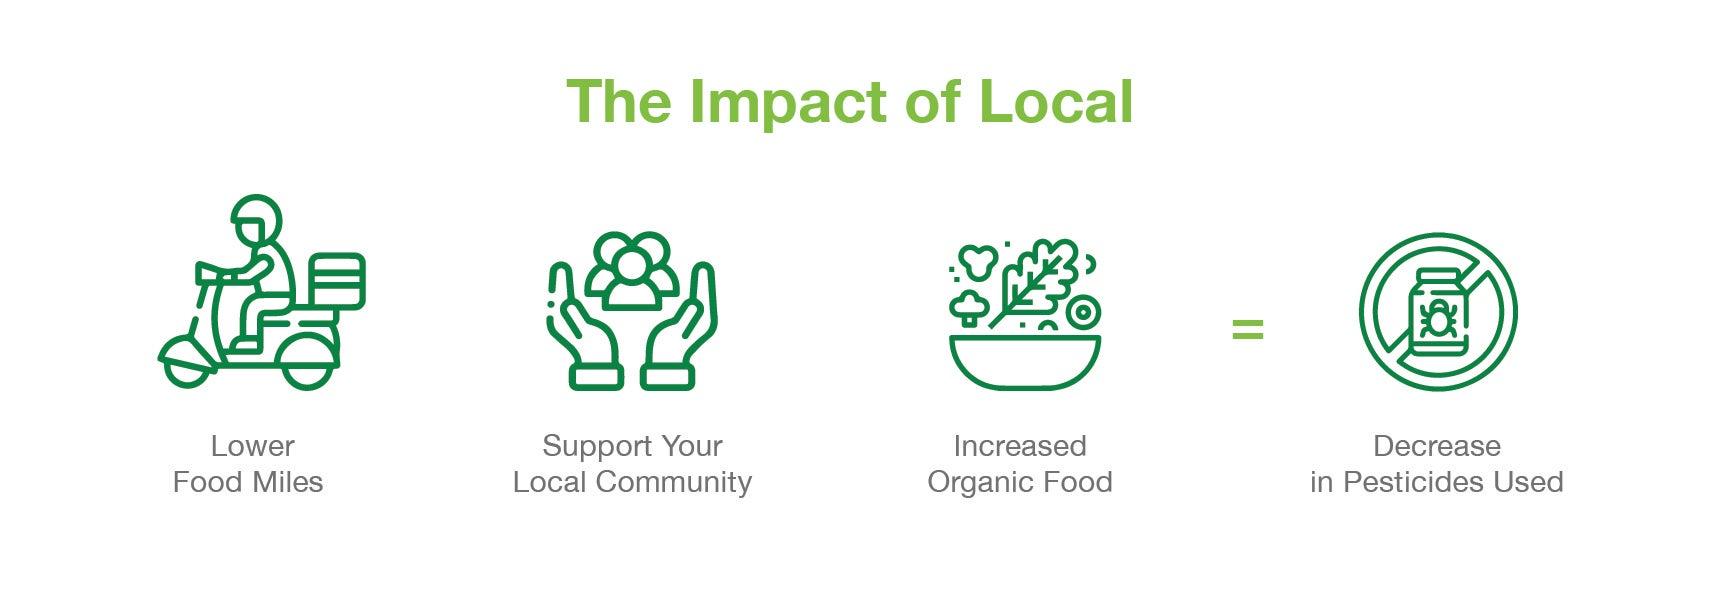 the-impact-of-locals-icons-01.jpg